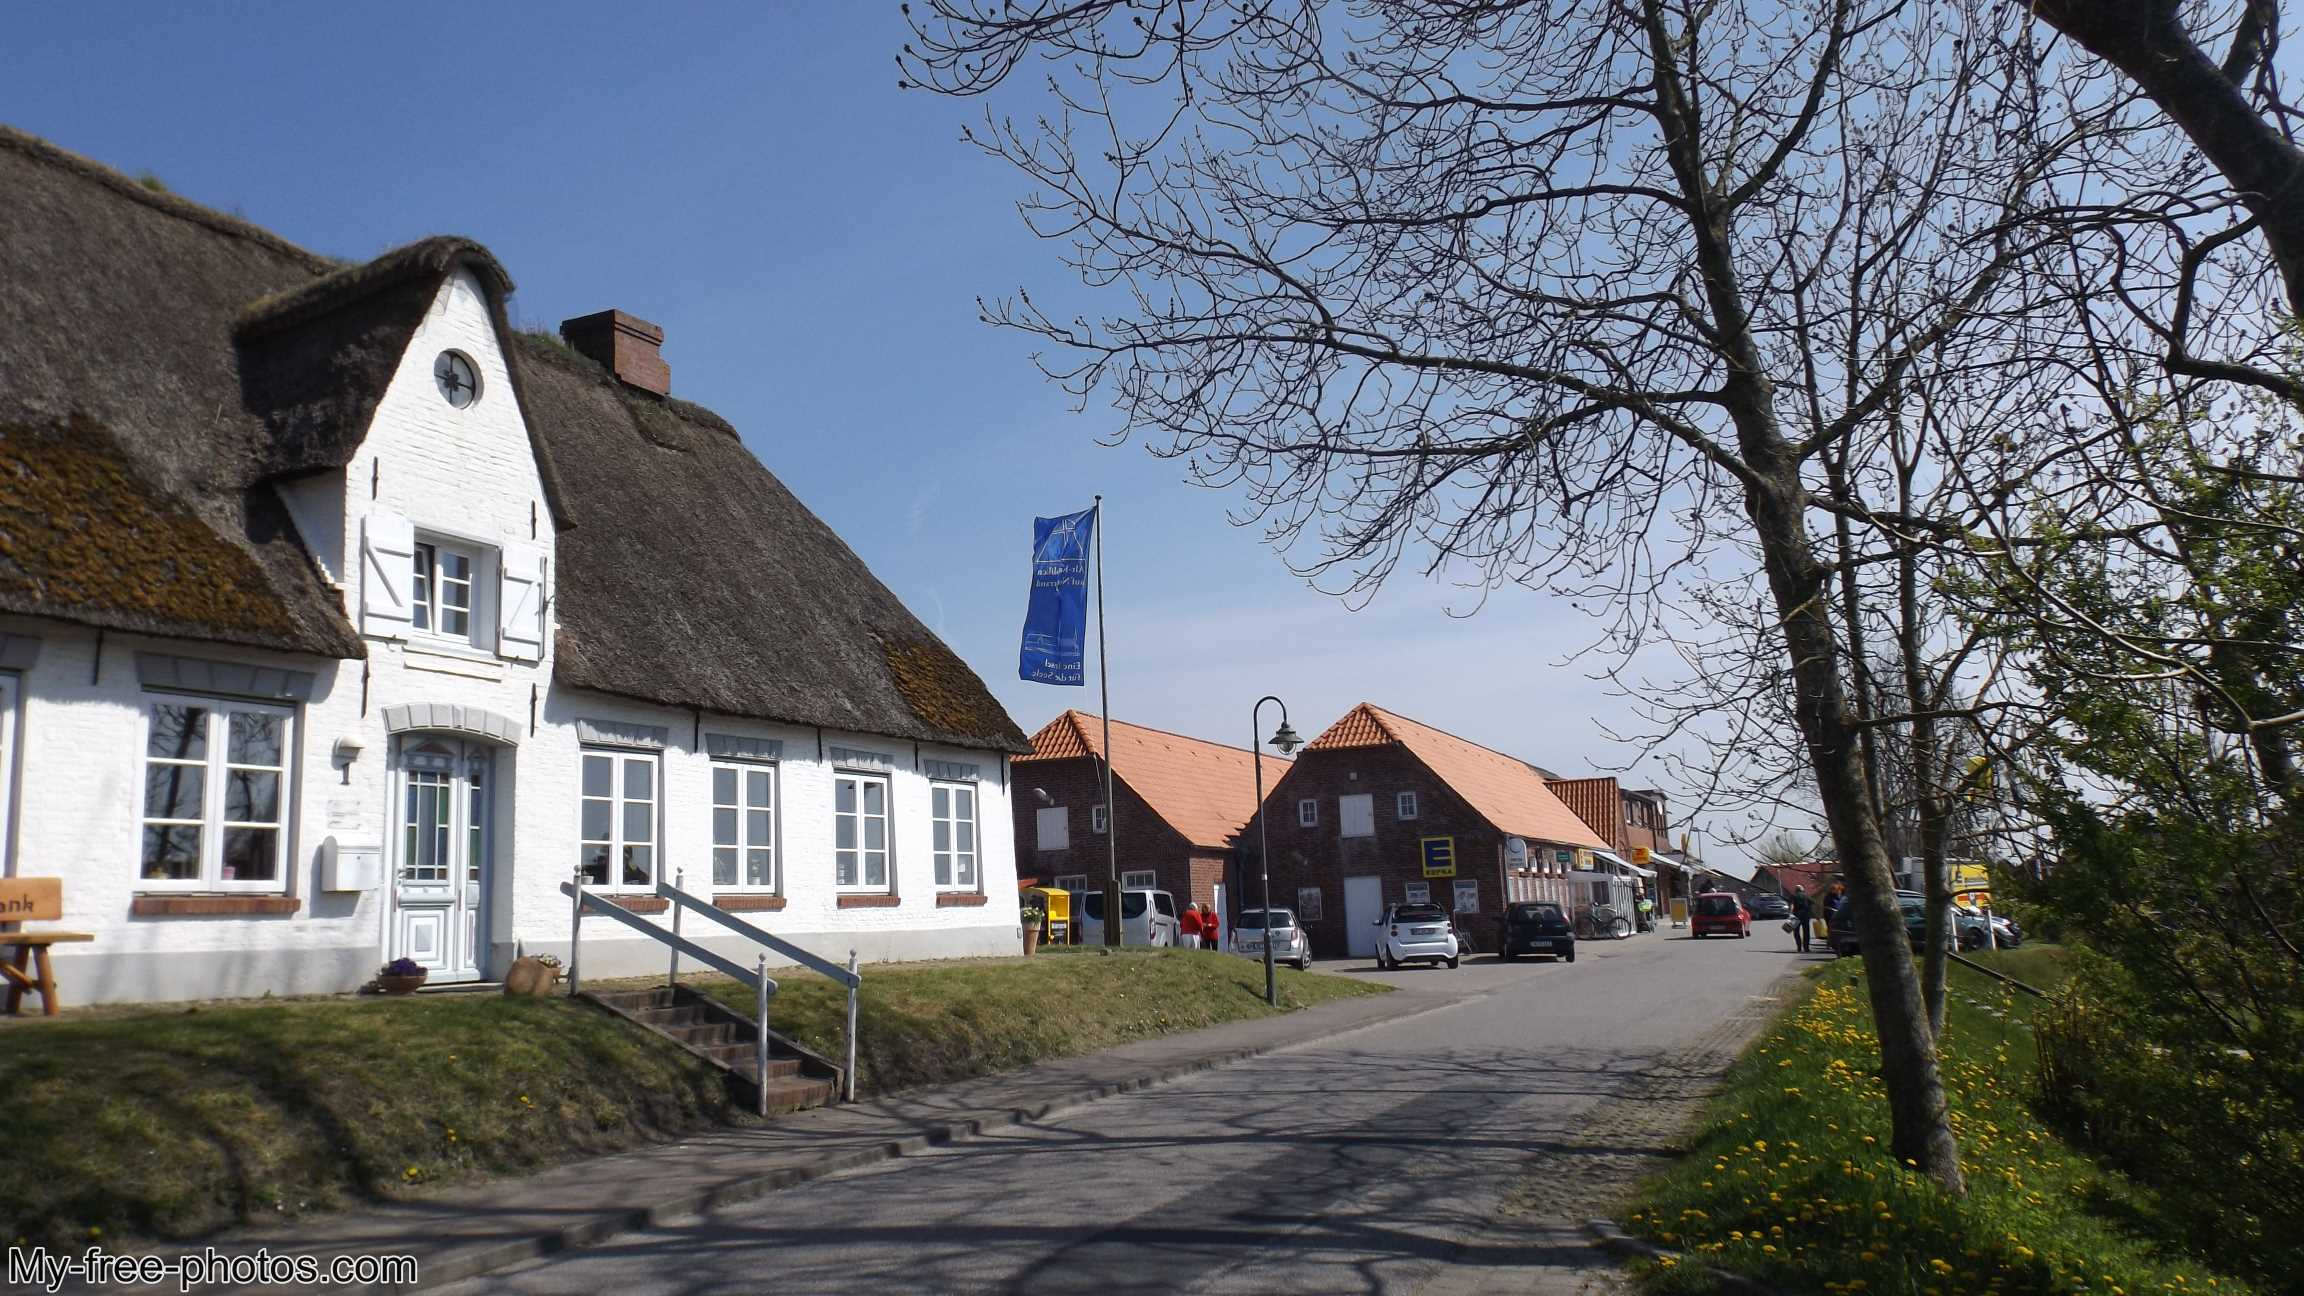 St. Theresa, Nordstrand